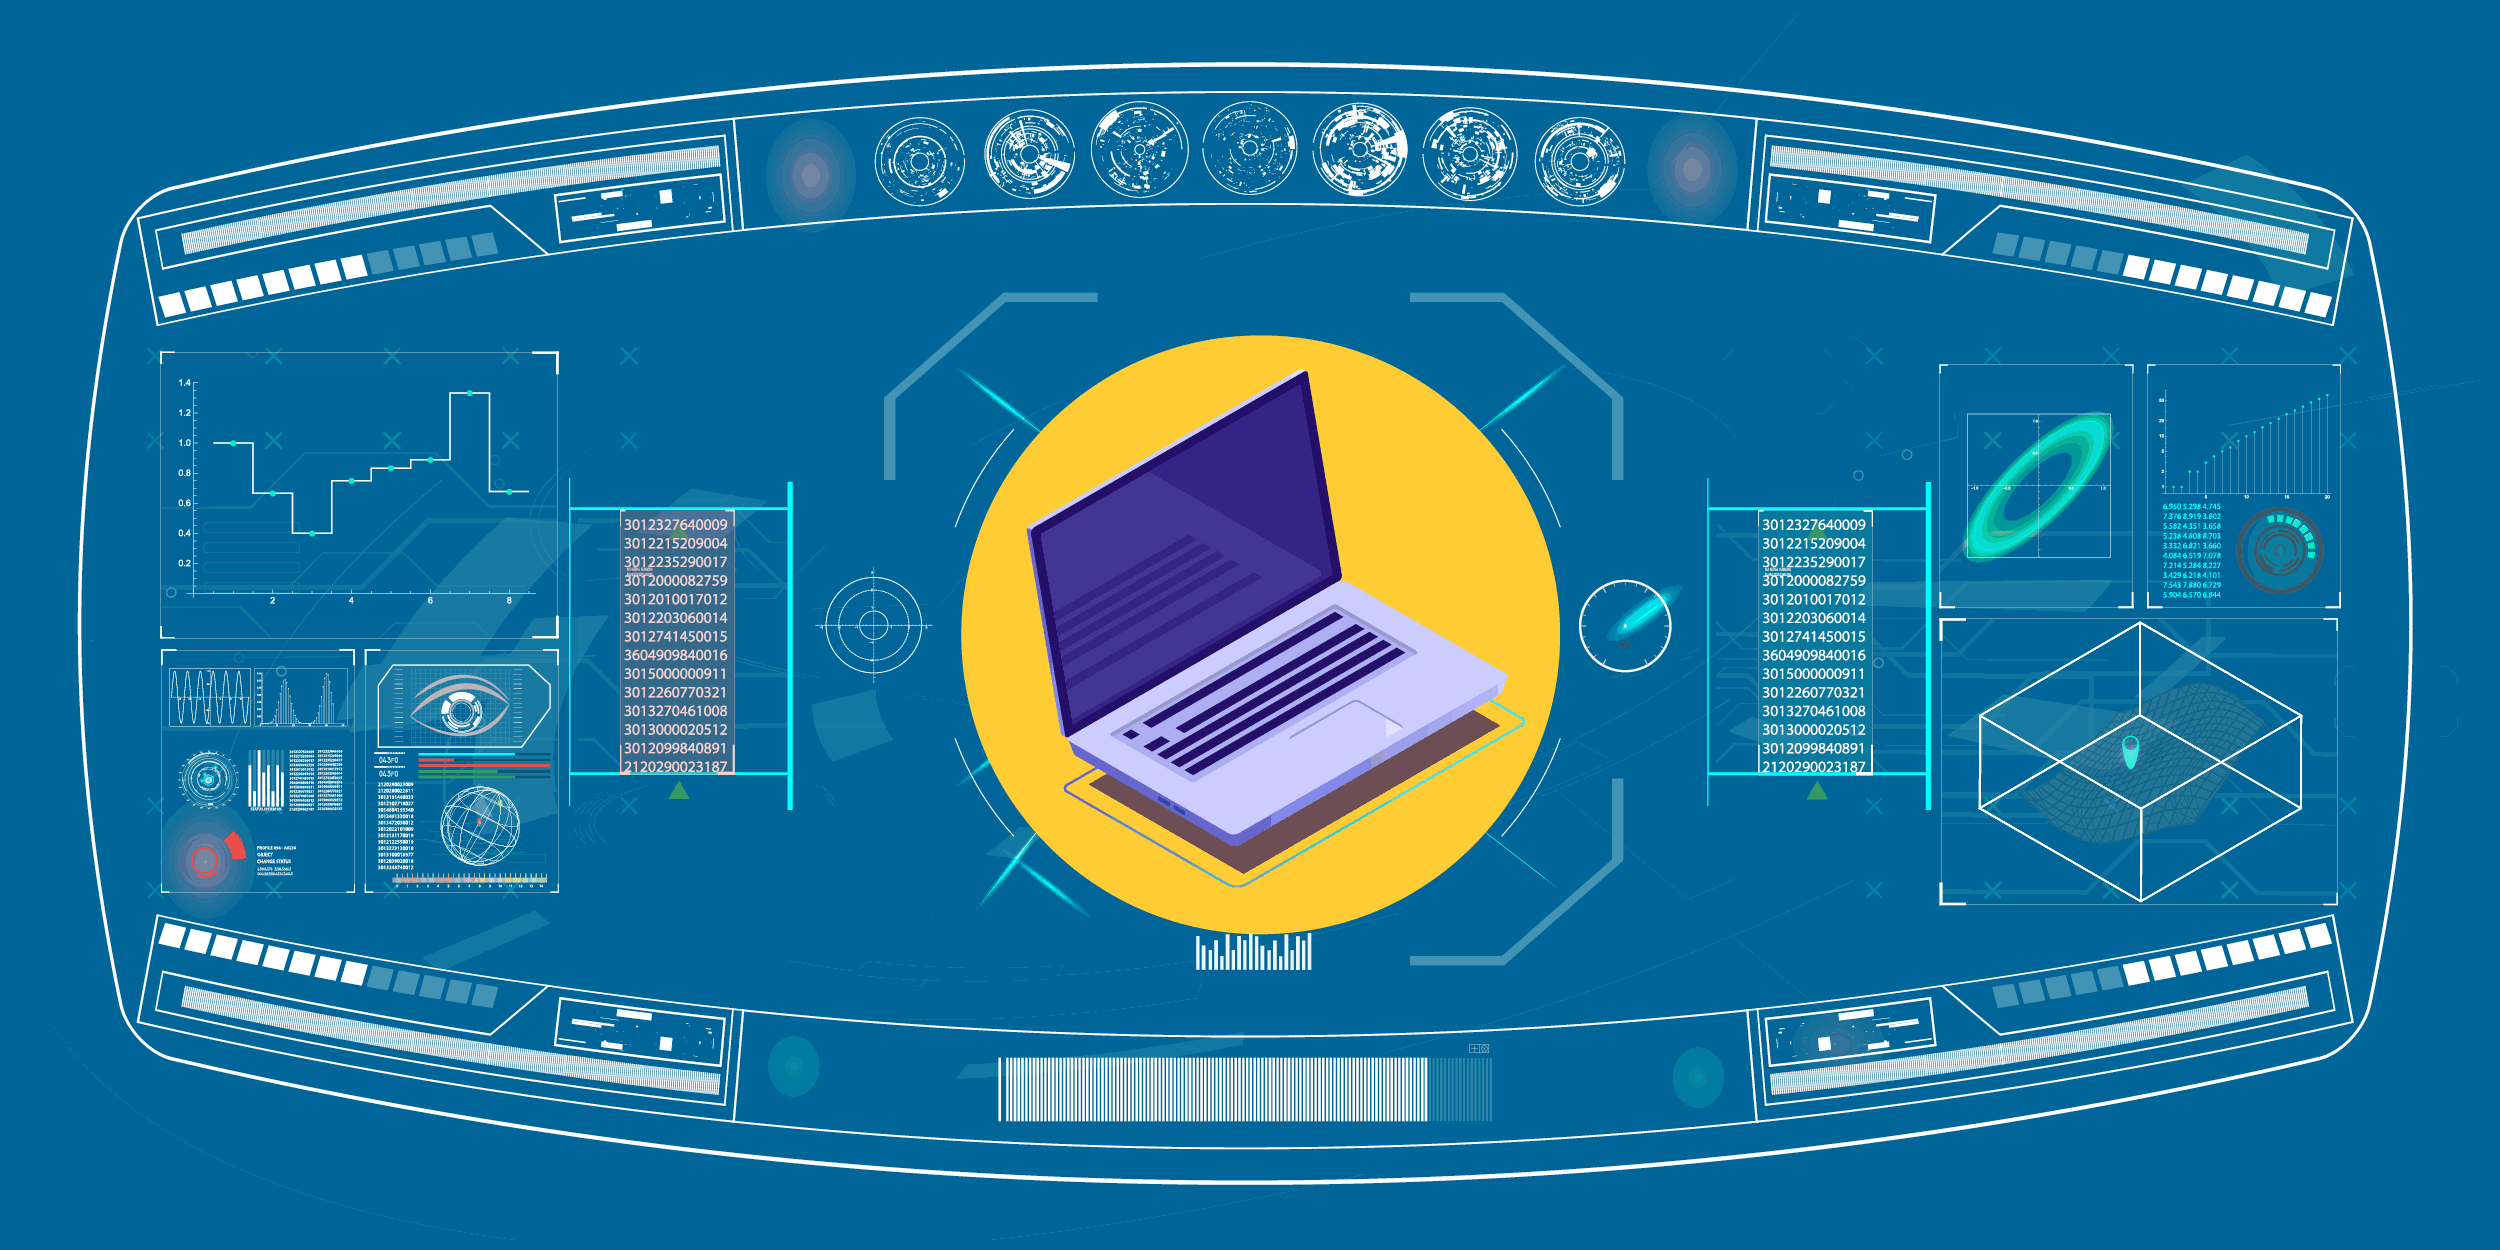 illustration of a dashboard with a laptop in the middle of it, symbolizing the need for nonprofit tech planning